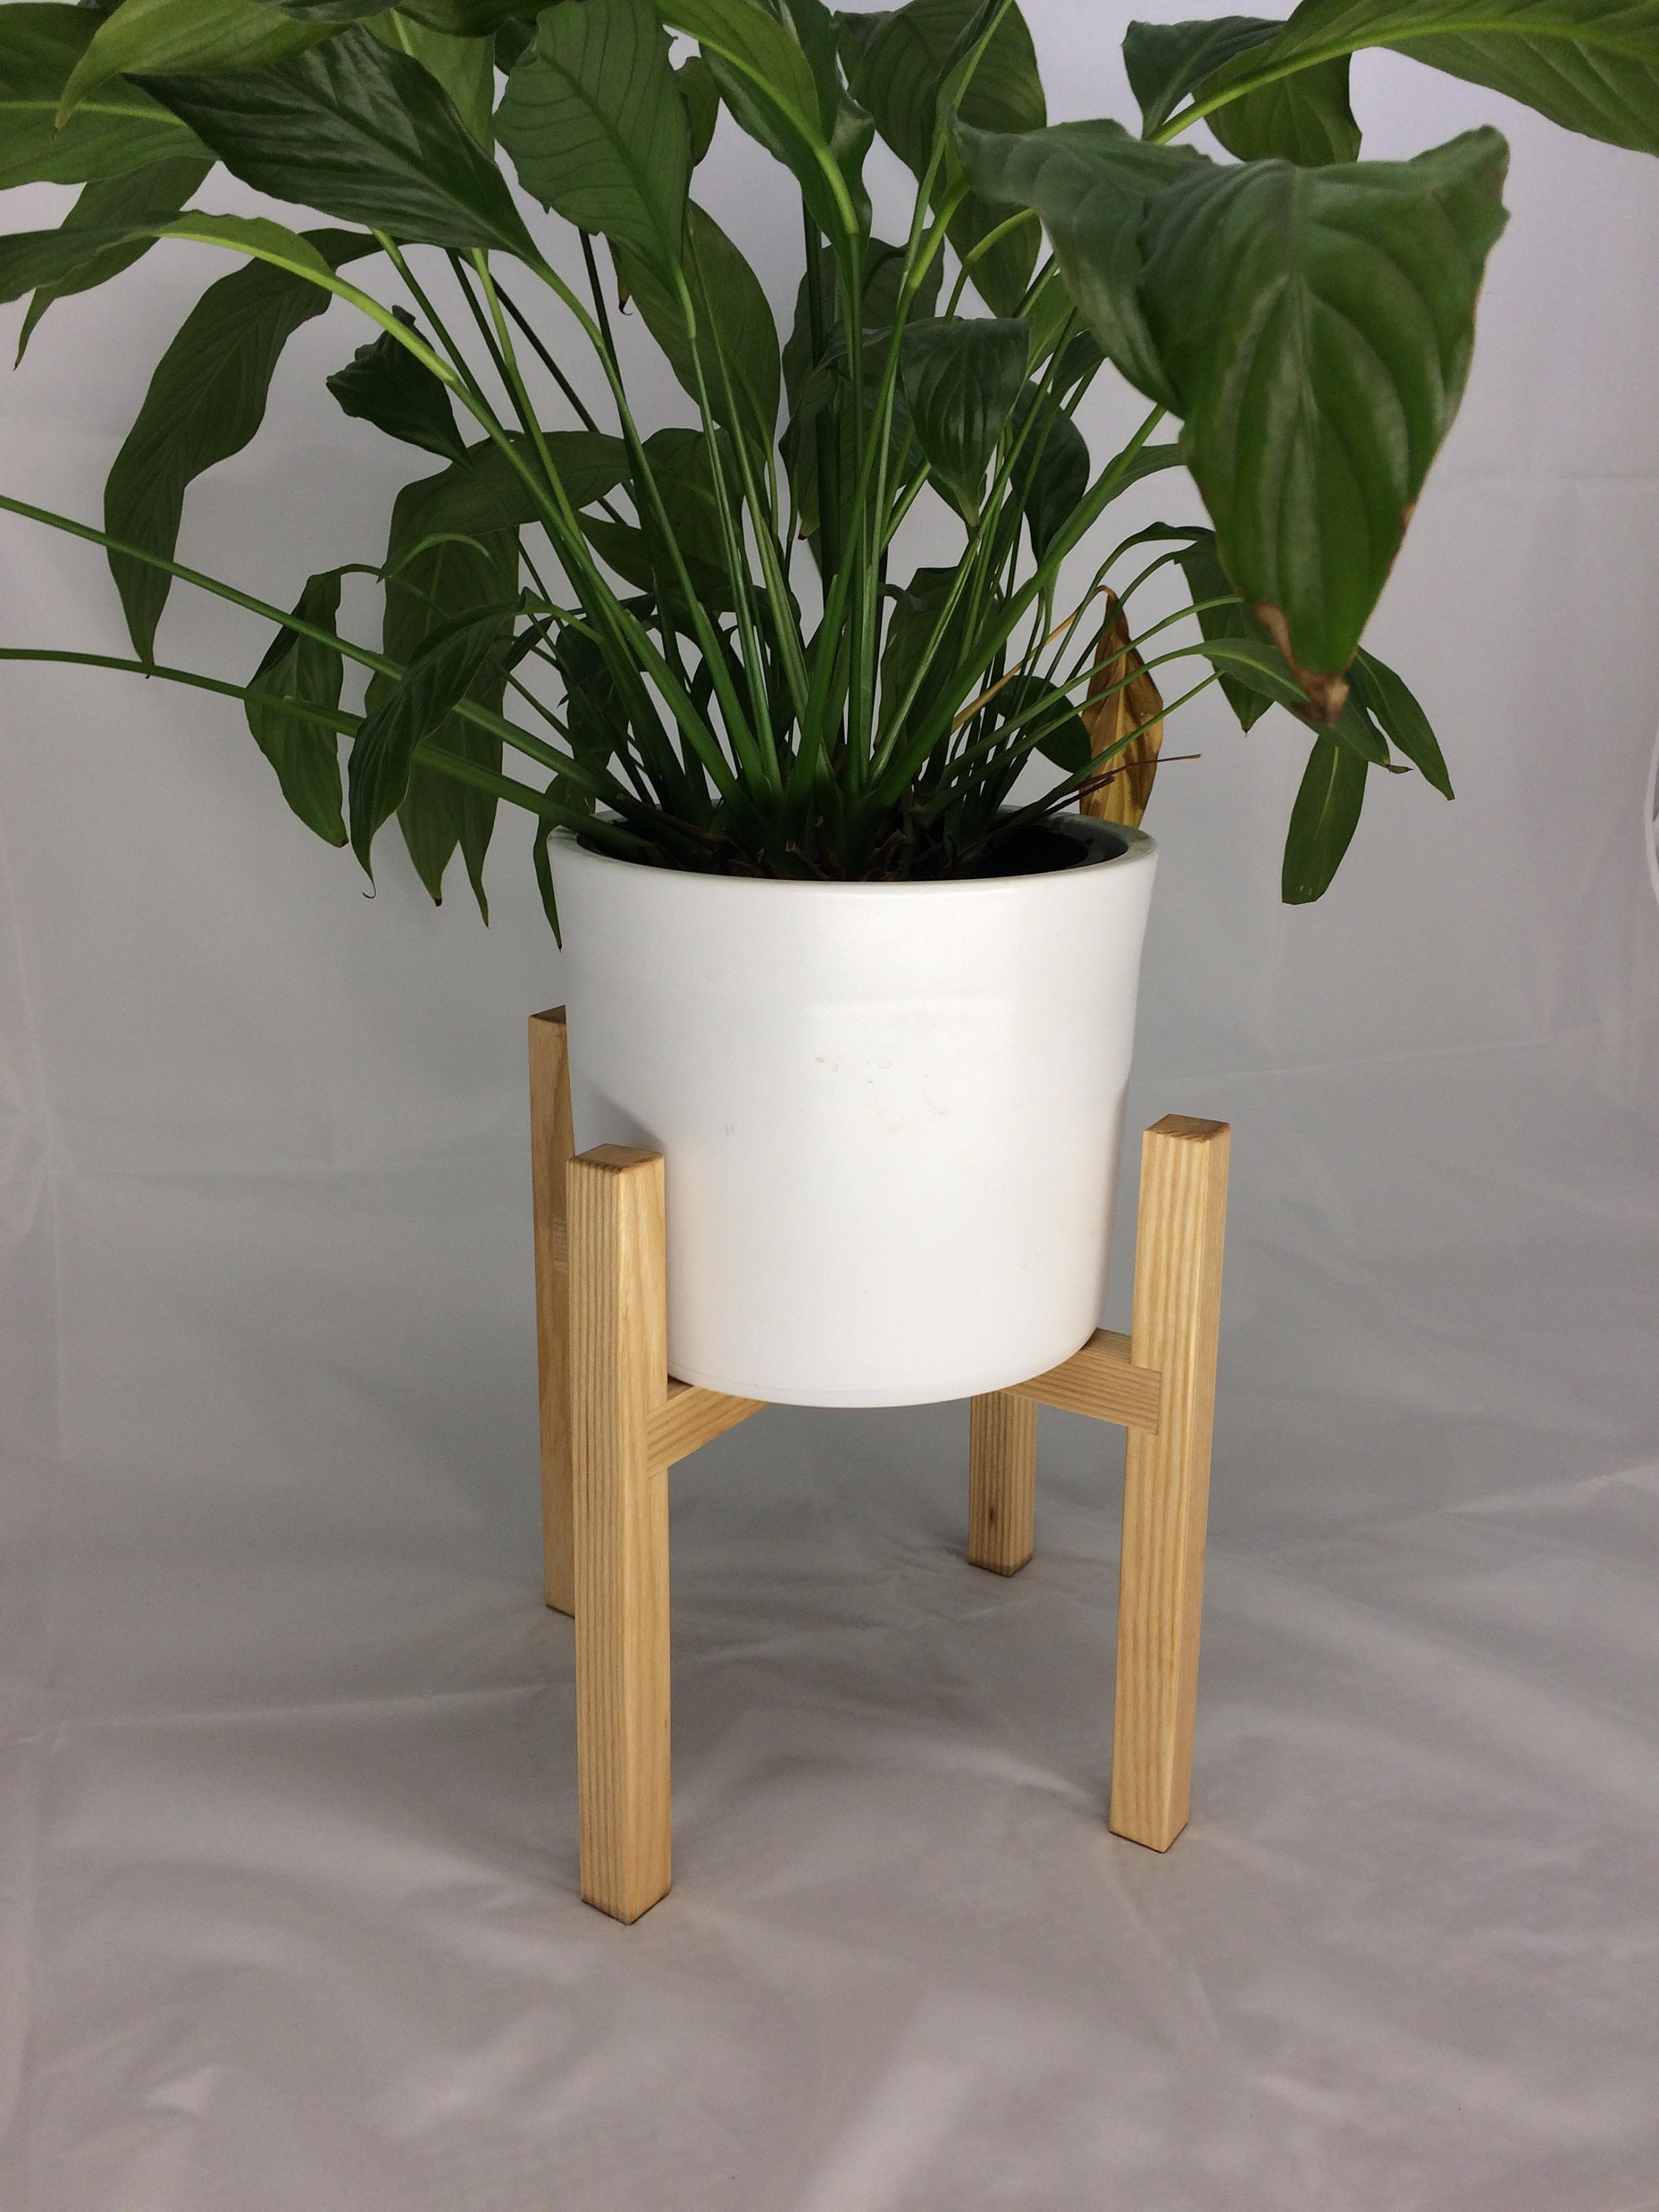 Handmade Ash Plant Stands